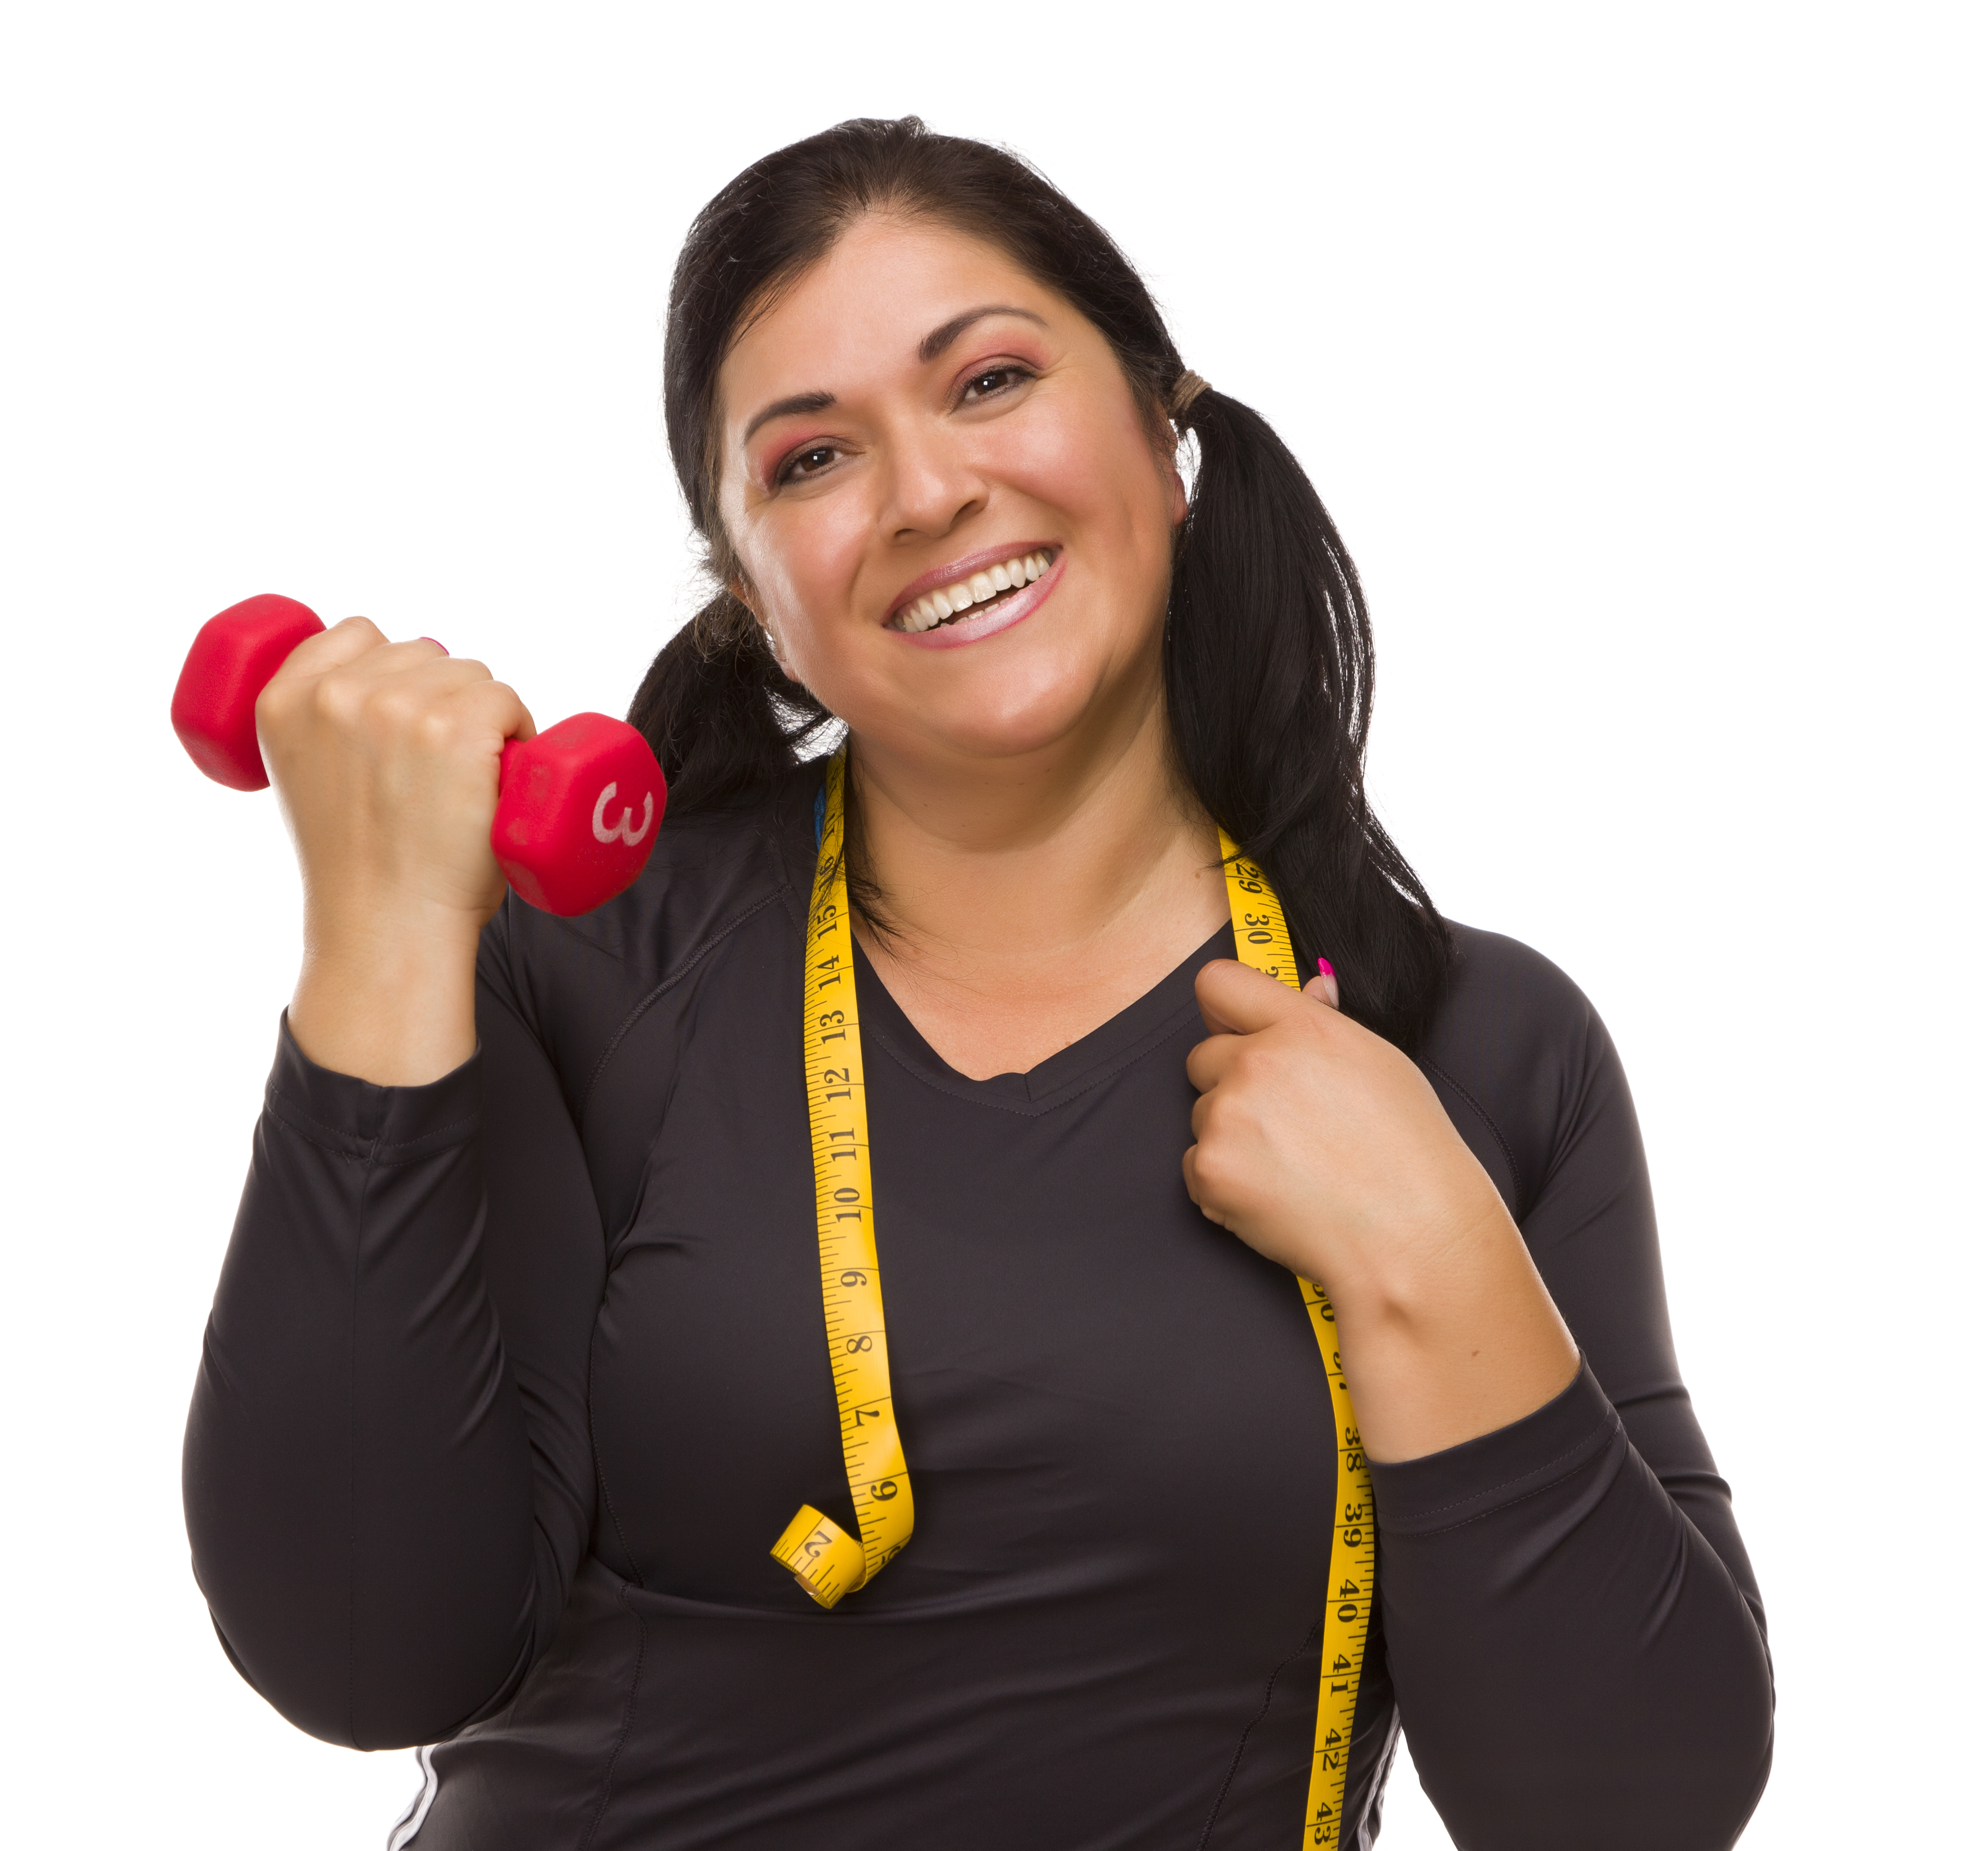 Does positive thinking help you lose weight quickly